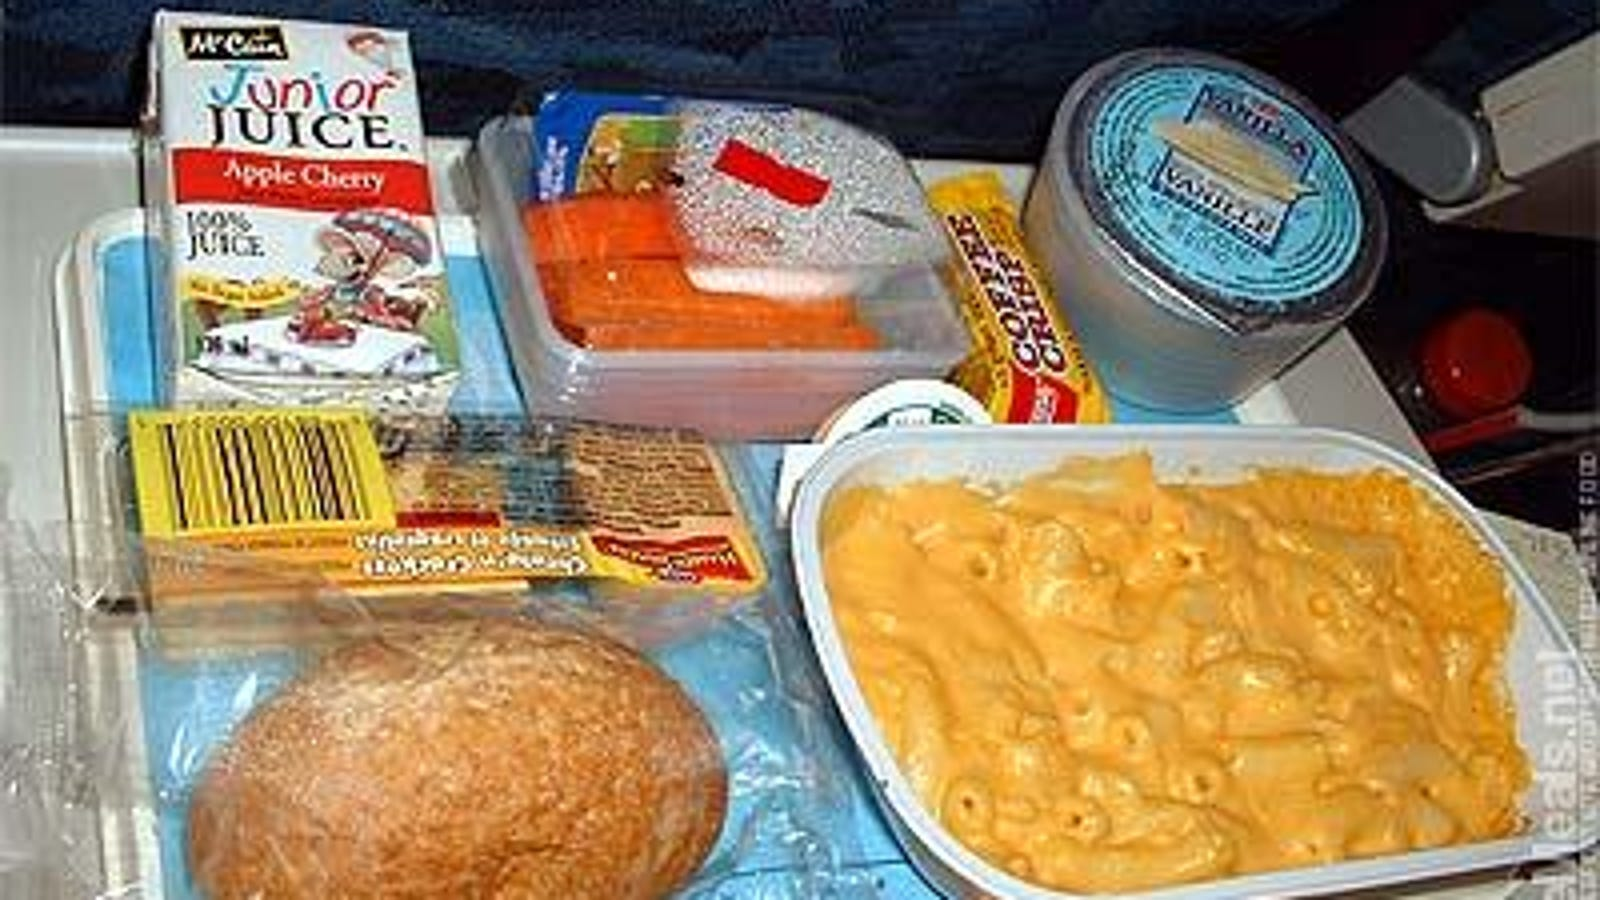 Airlines Fight Over Who Can Offer the Least Disgusting Food